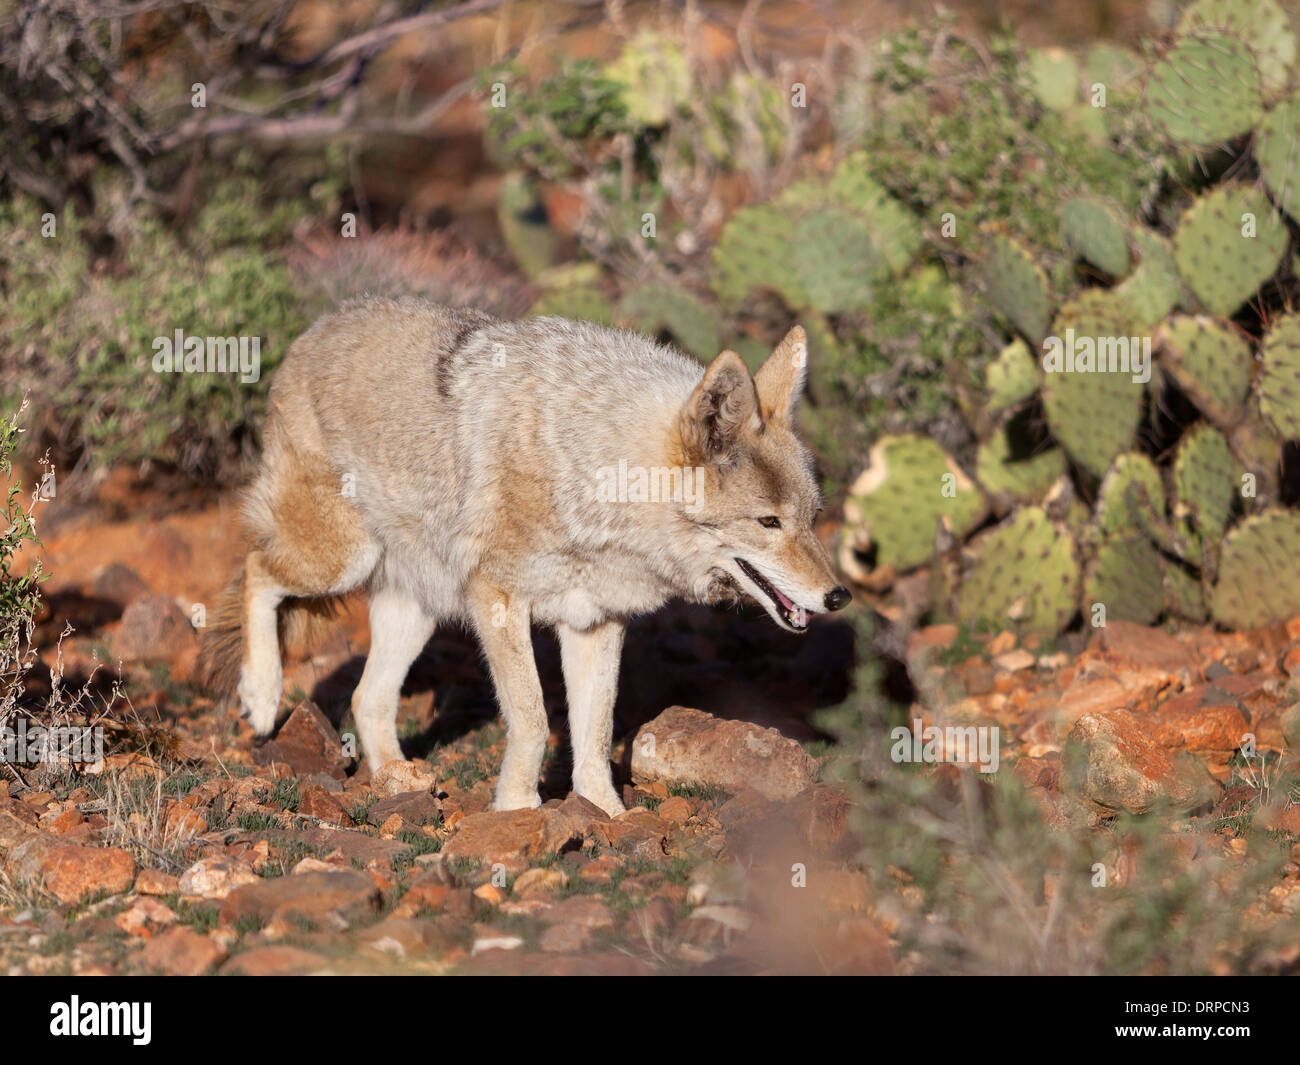 The coyote (US Canis latrans), also known as the American jackal, brush wolf, or the prairie wolf, is a species of canine. - Stock Image